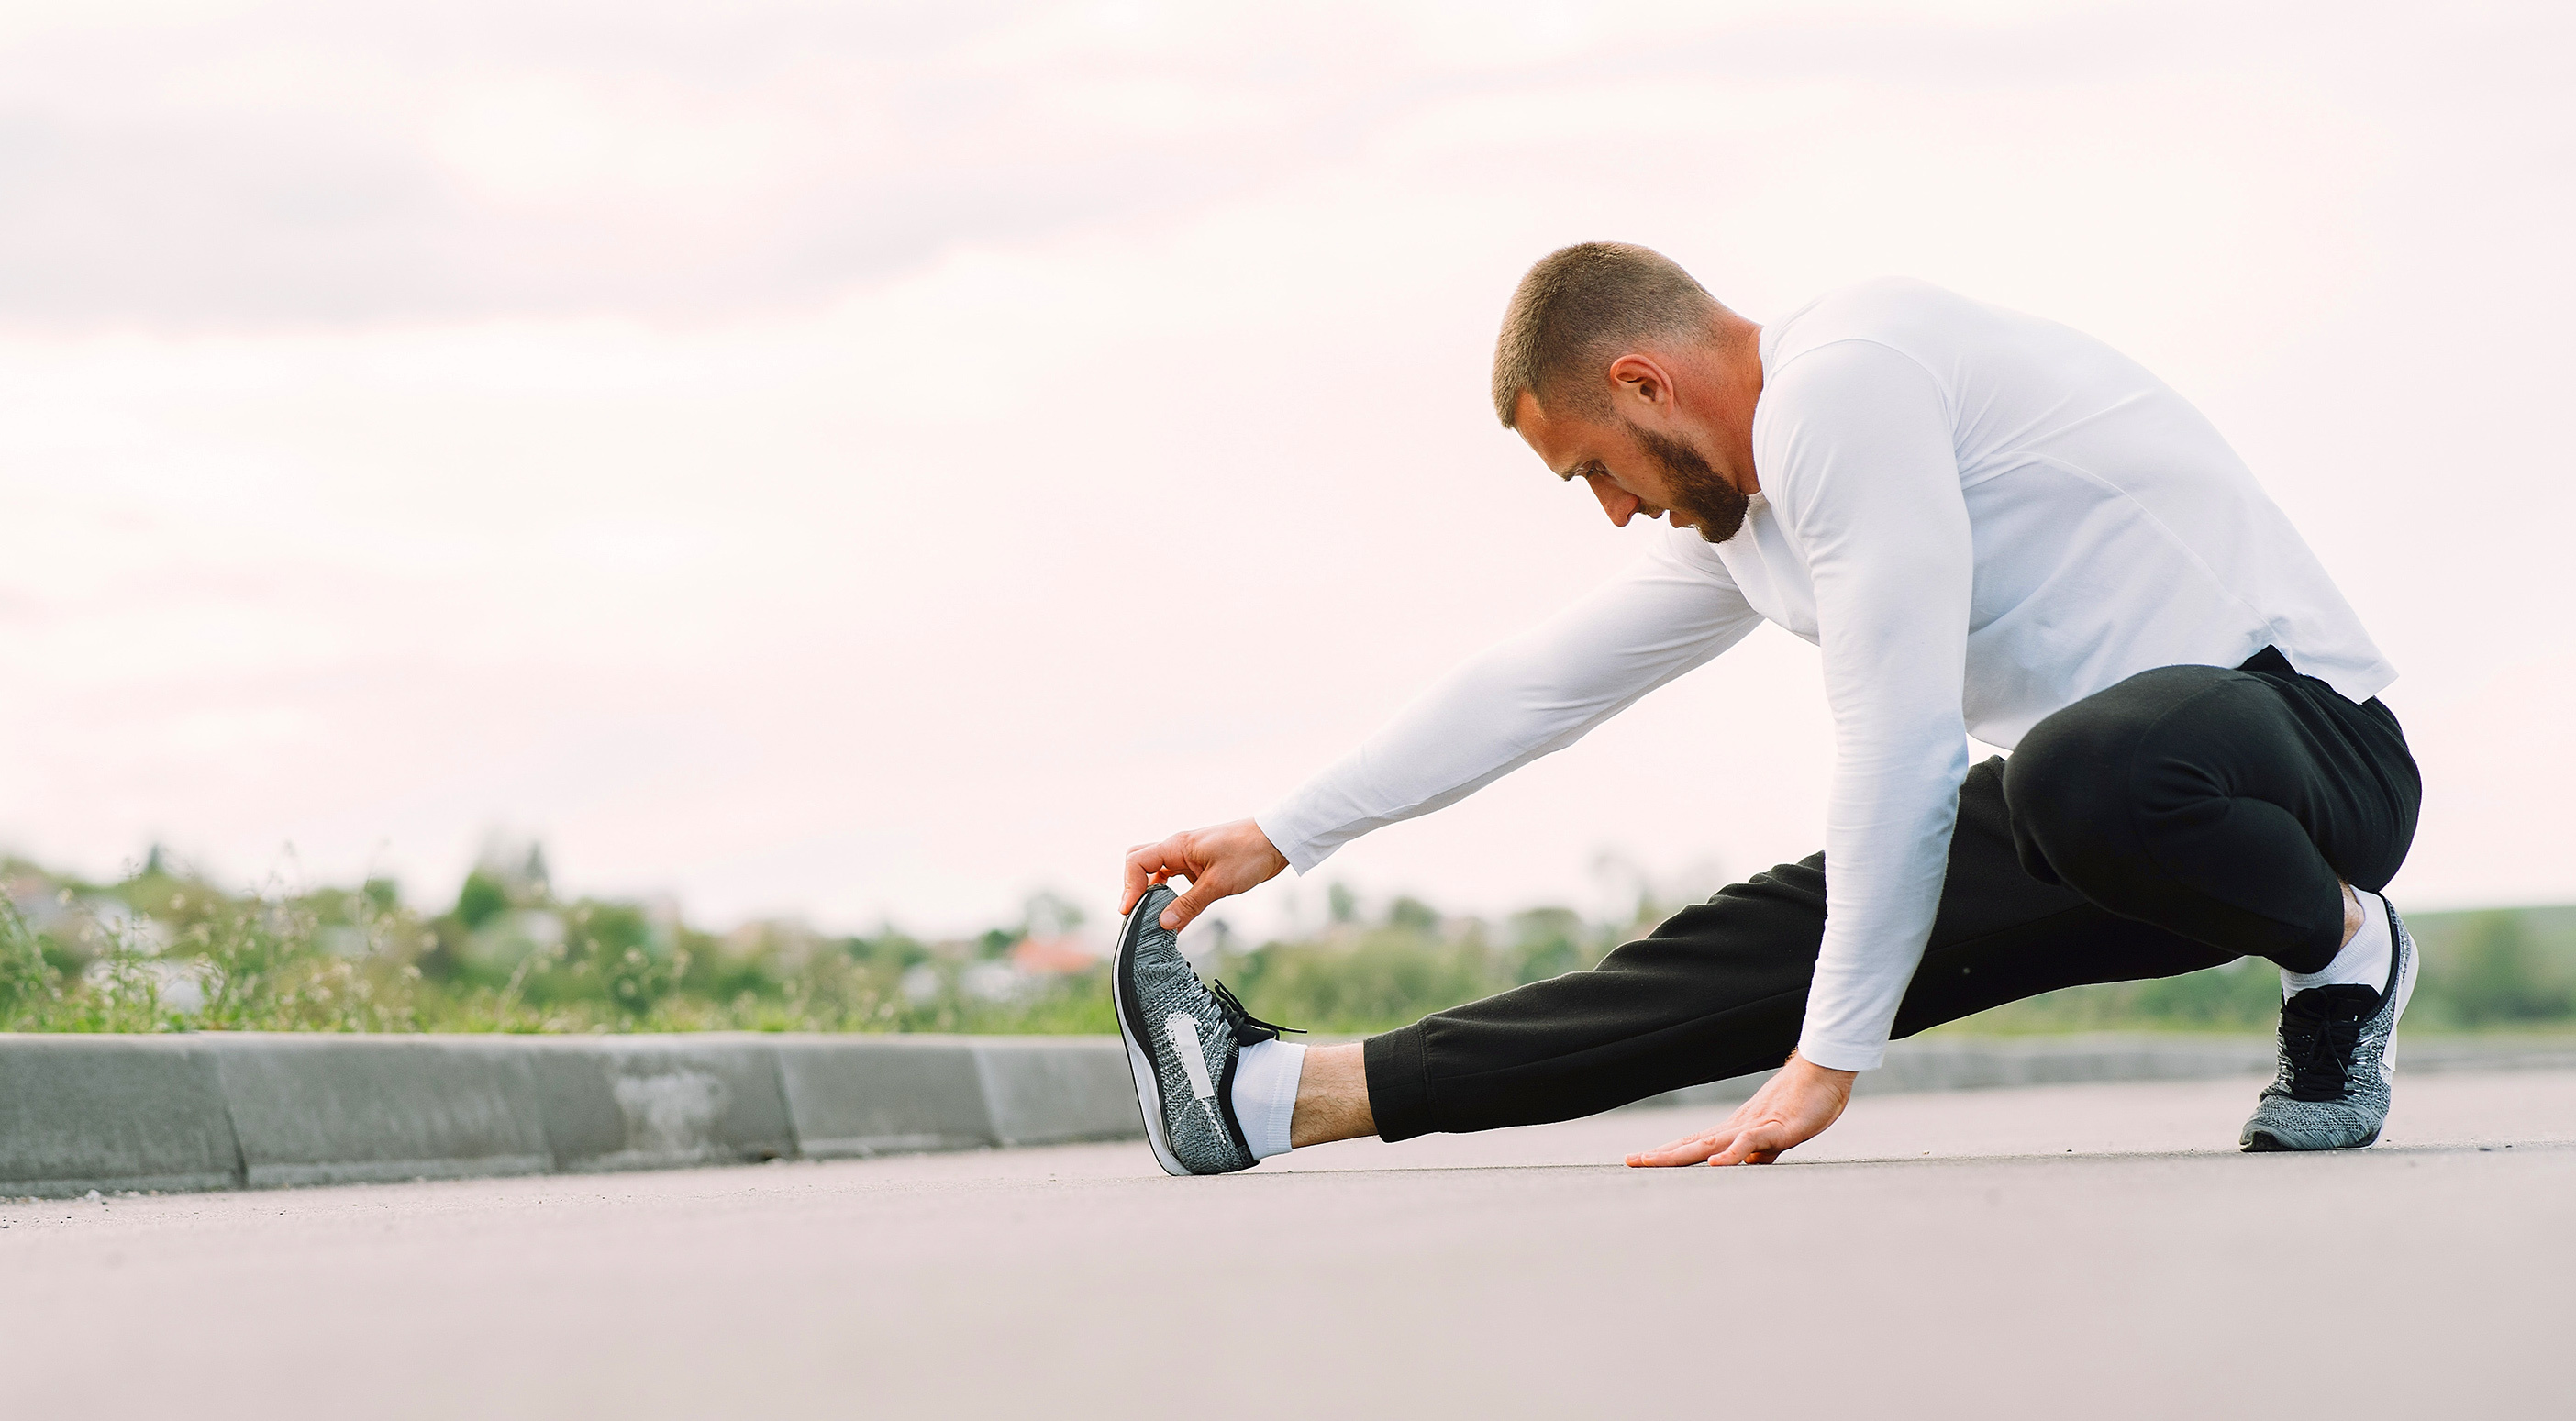 Young man exercising and stretching outside during ramadan